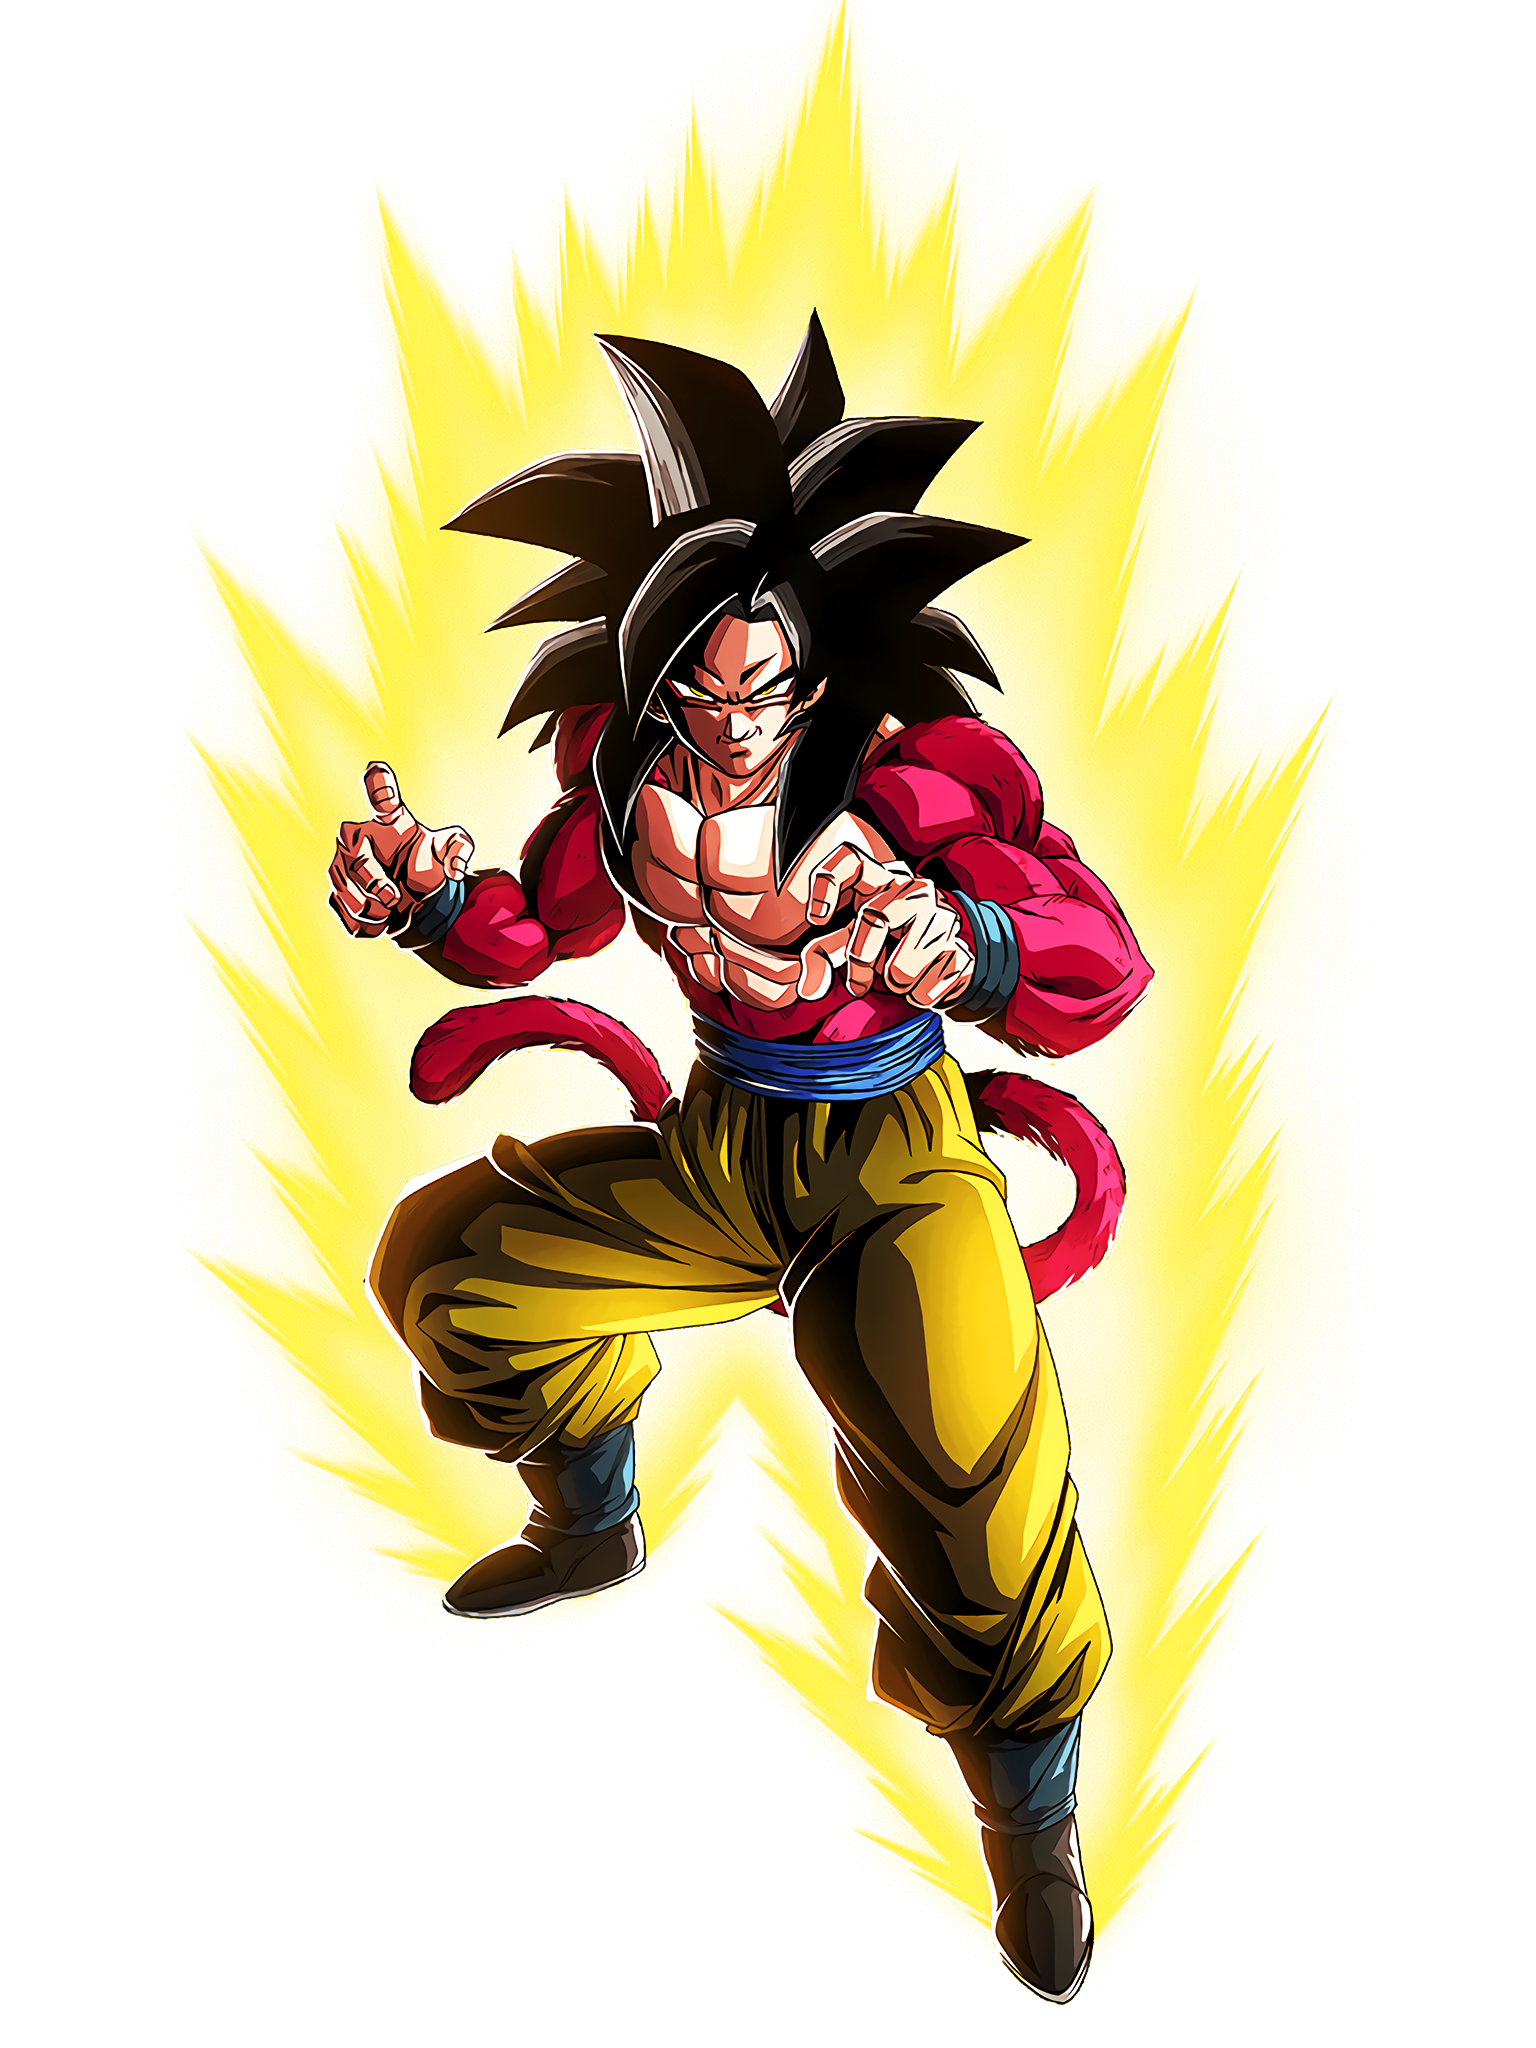 The Point of the Strongest Saiyan SSJ4 Goku GT Render (Dragon Ball Z Dokkan Battle).png